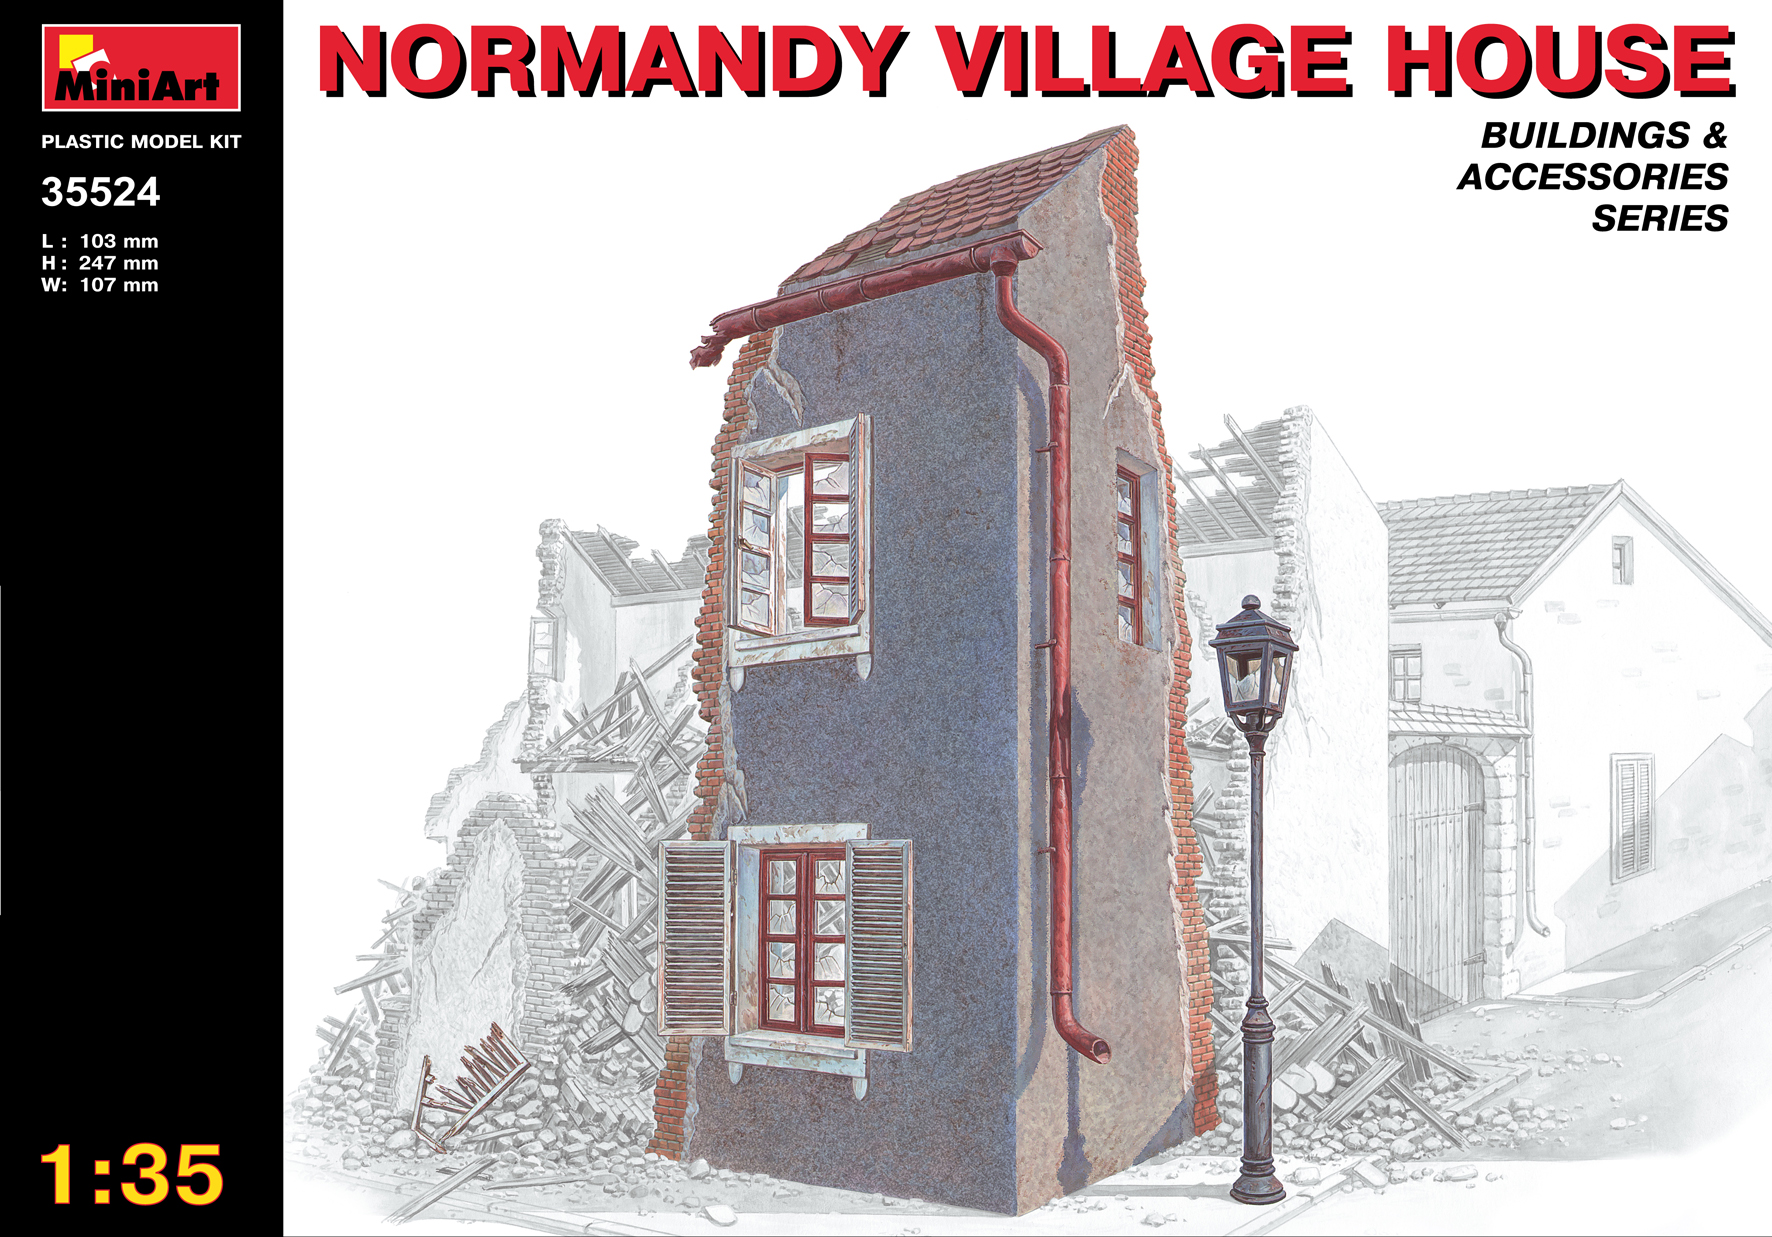 35524 NORMANDY VILLAGE HOUSE